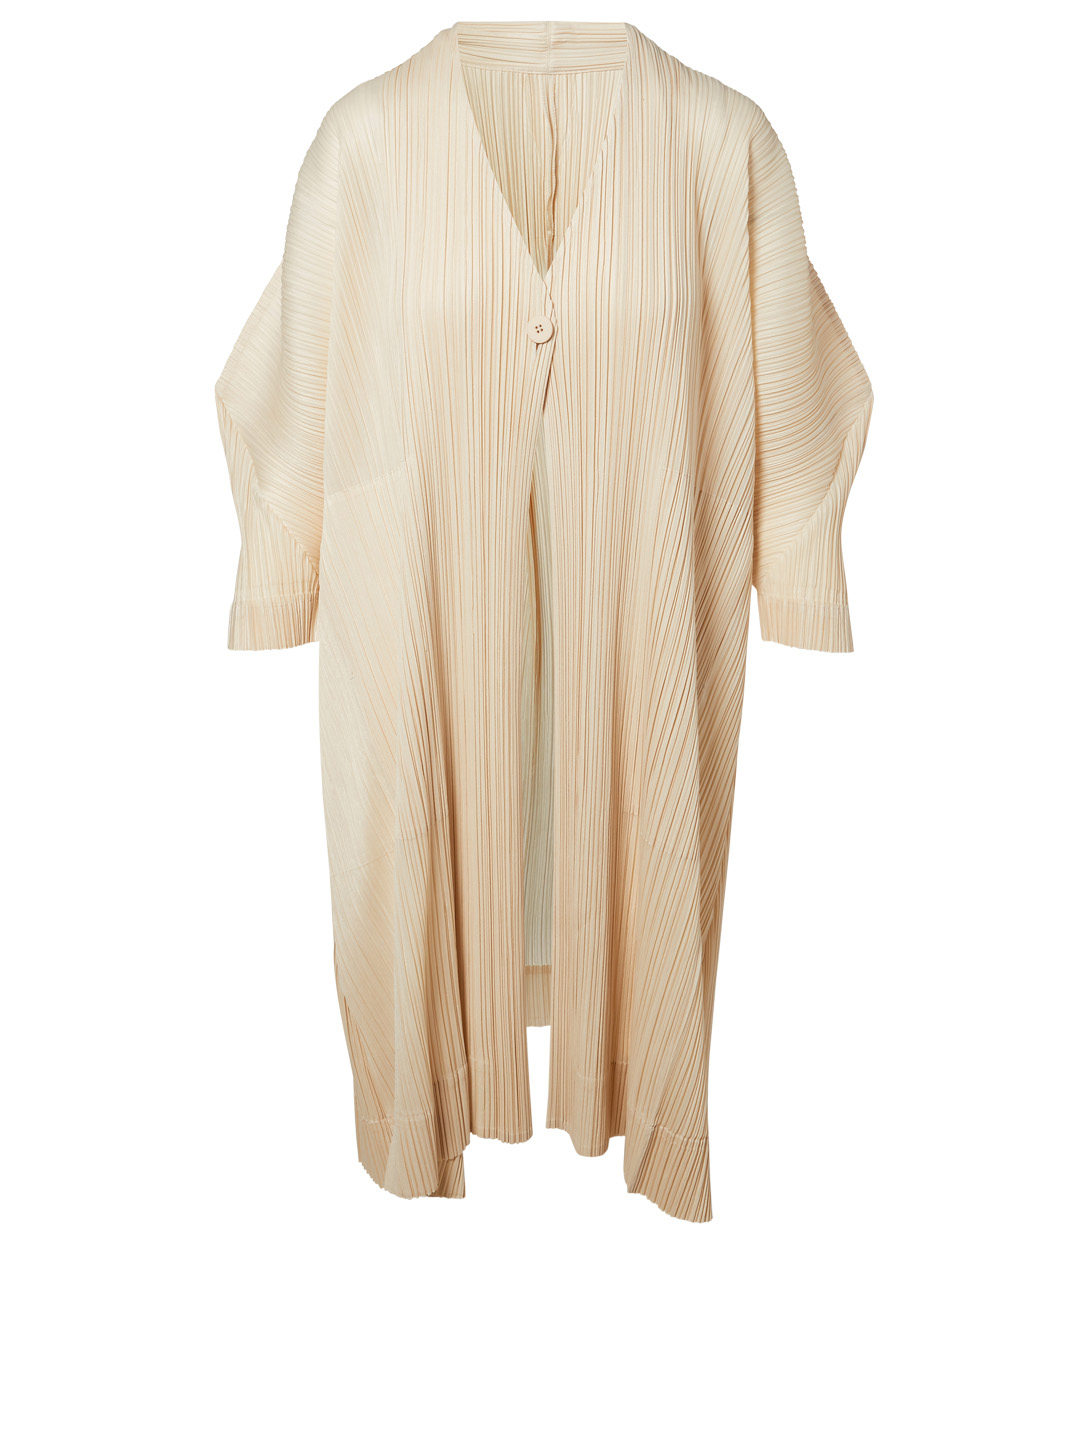 PLEATS PLEASE ISSEY MIYAKE Stilted Form Pleated Cardigan Women's Neutral